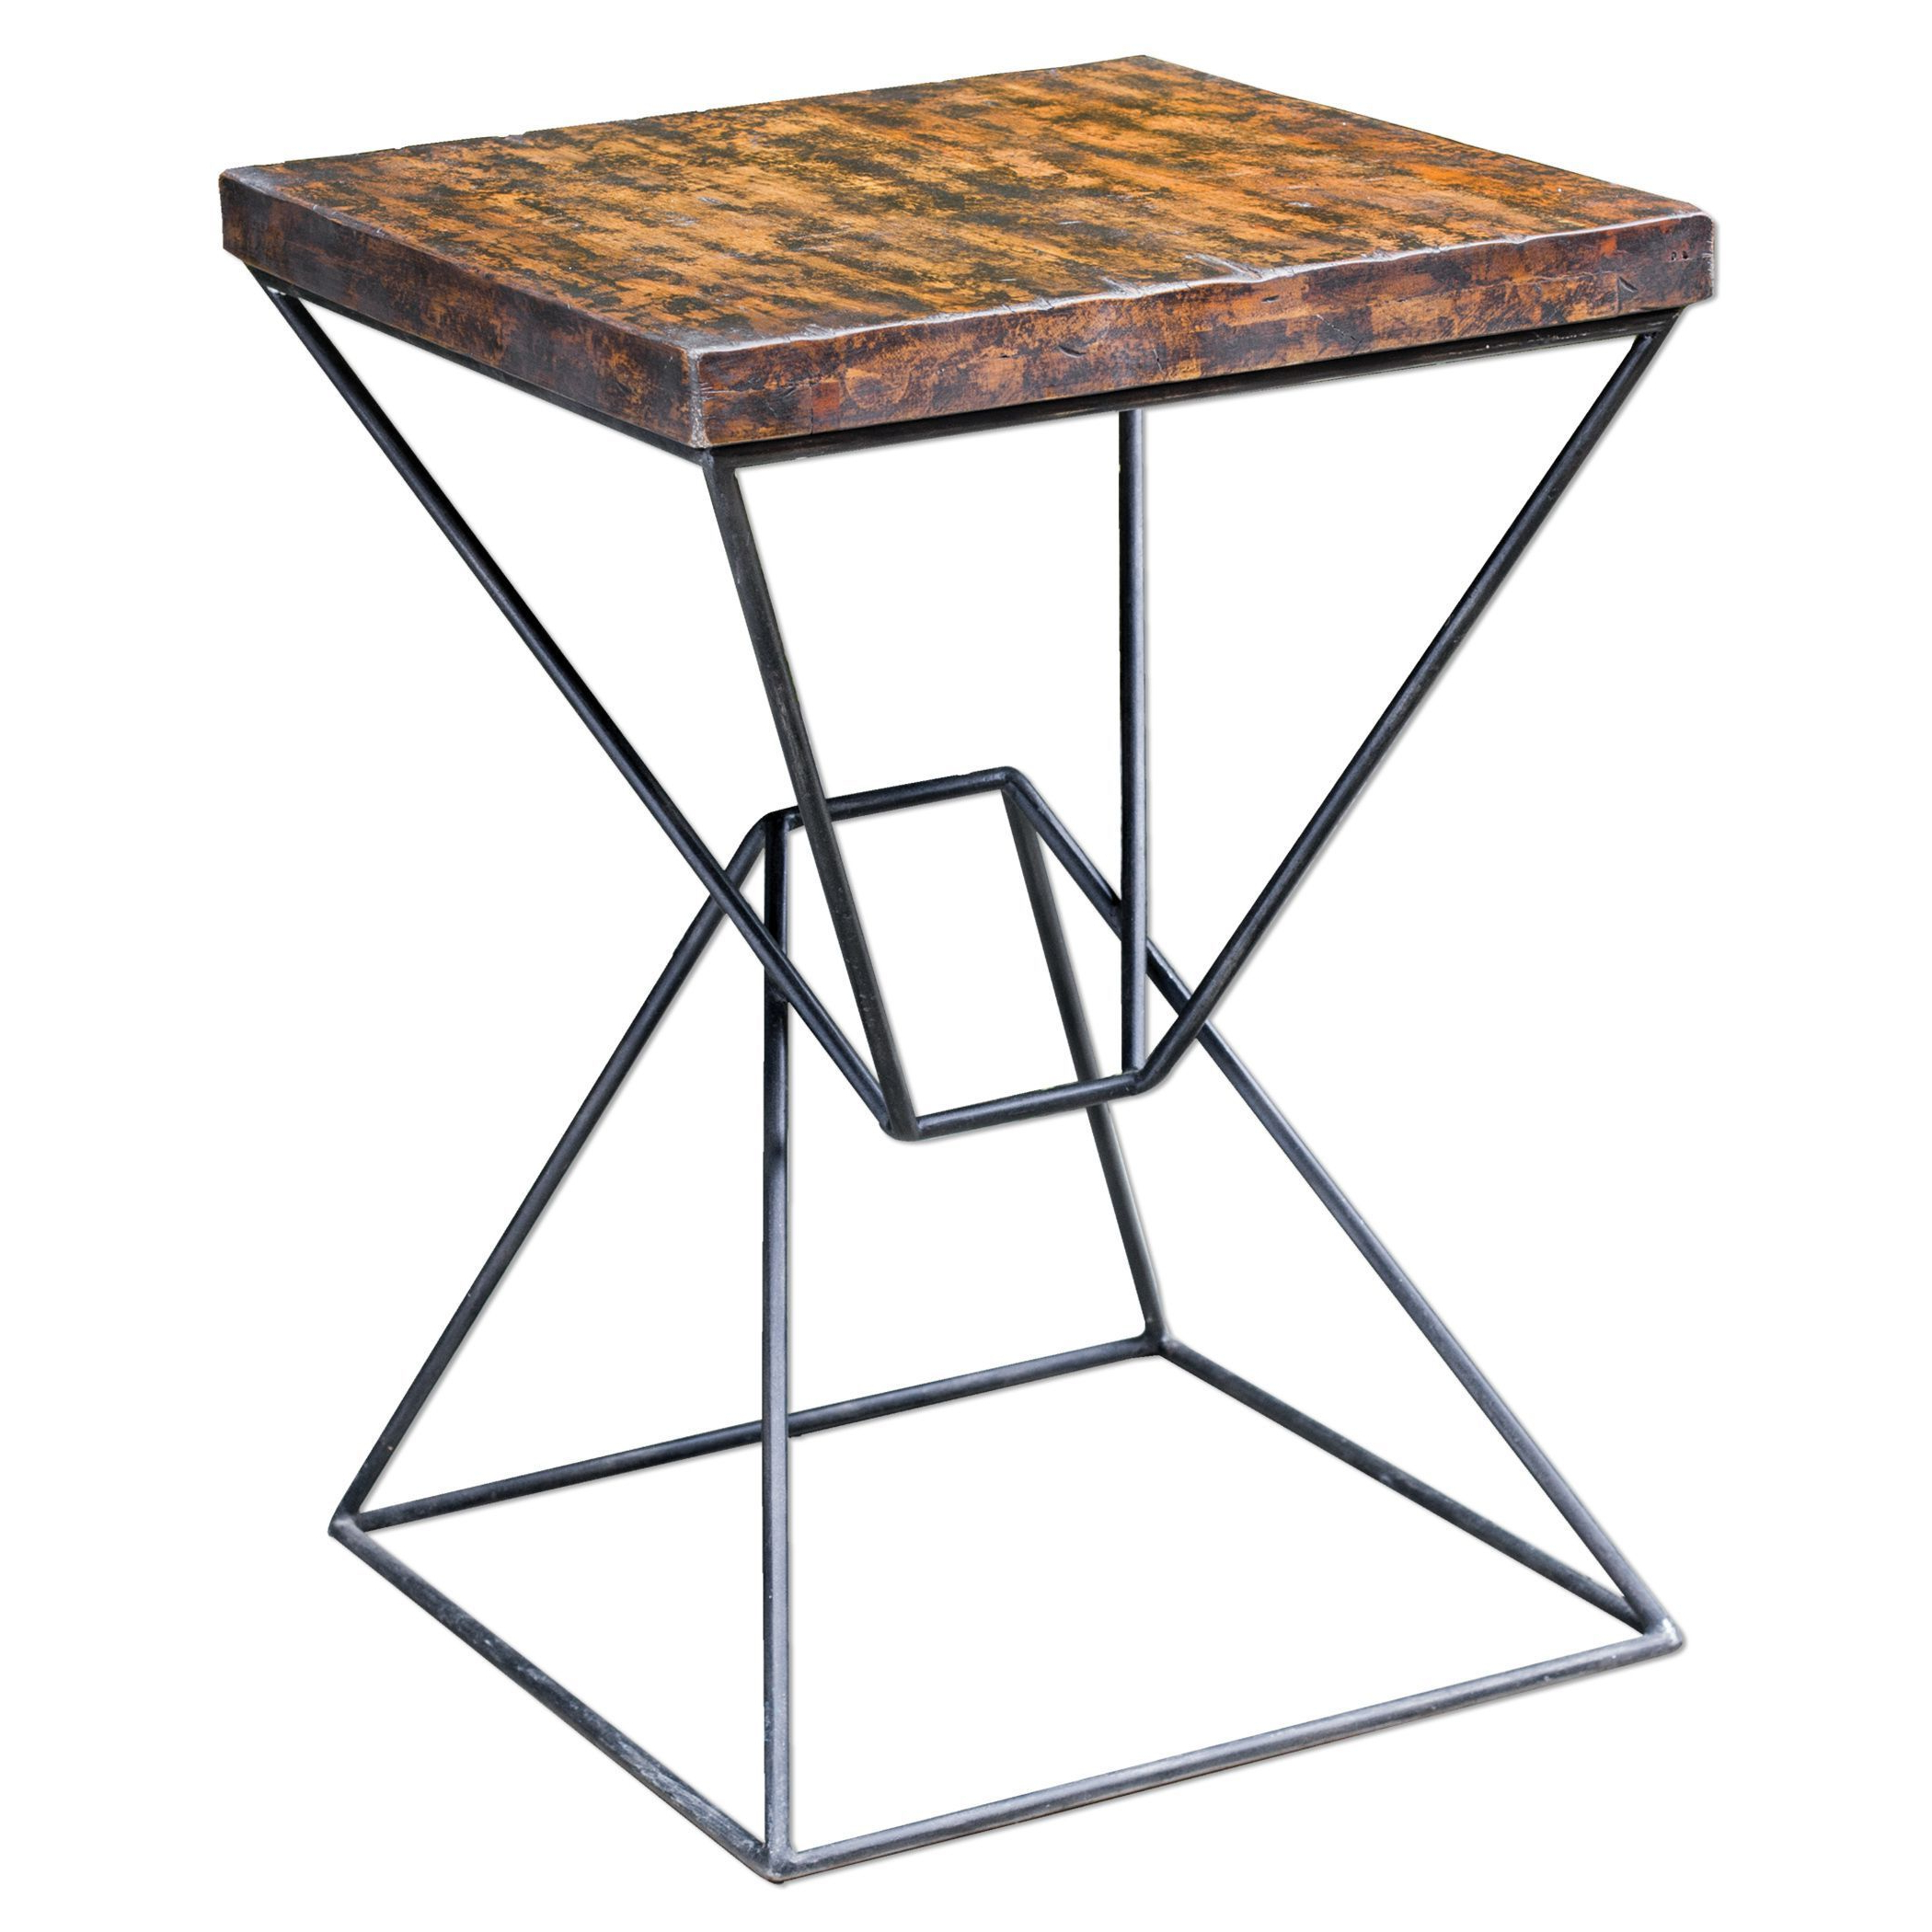 Naveen Coffee Tables Inside 2019 Naveen Modern Accent Table – Free Shipping Today – Overstock – 18034133 (Gallery 2 of 20)